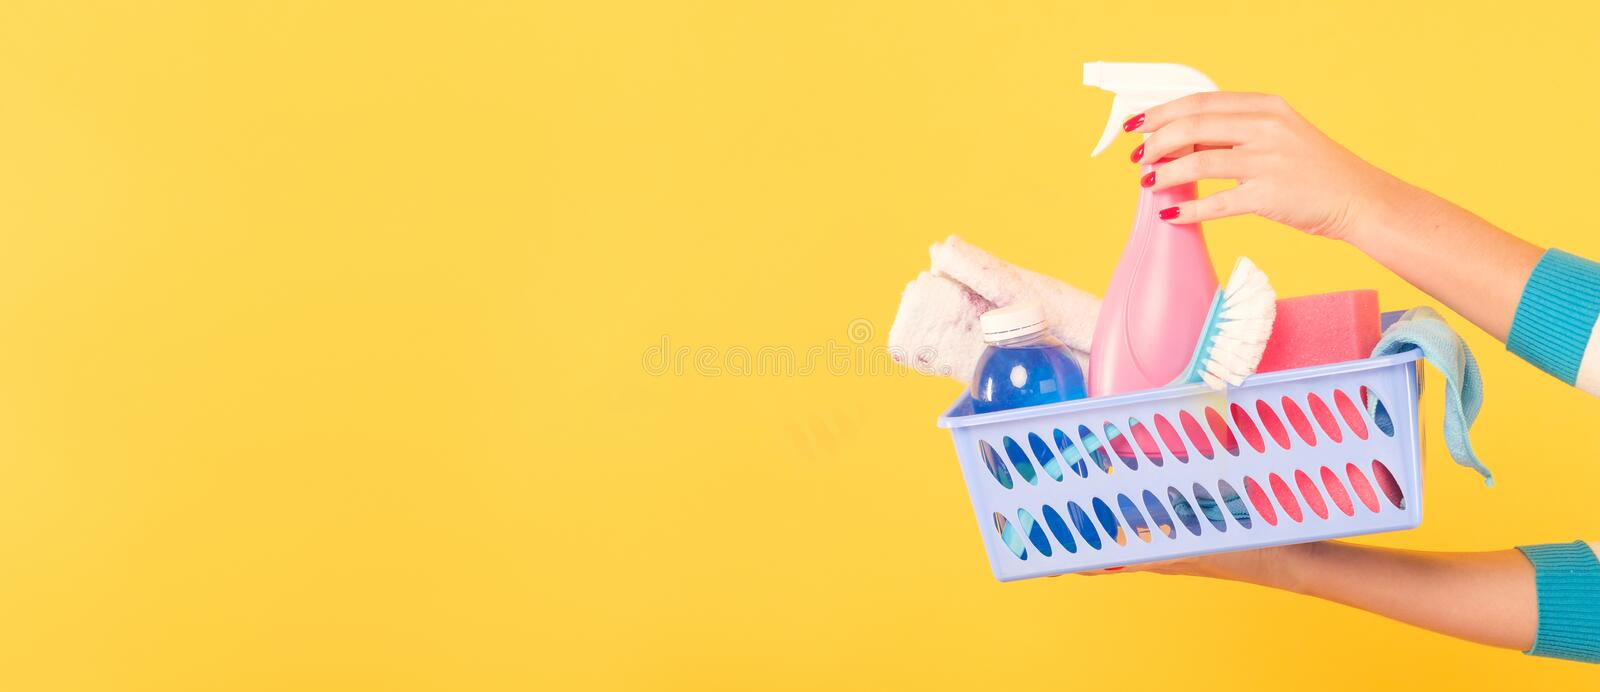 Diy Home Cleaning Woman Supplies Copy Space Stock Image ...